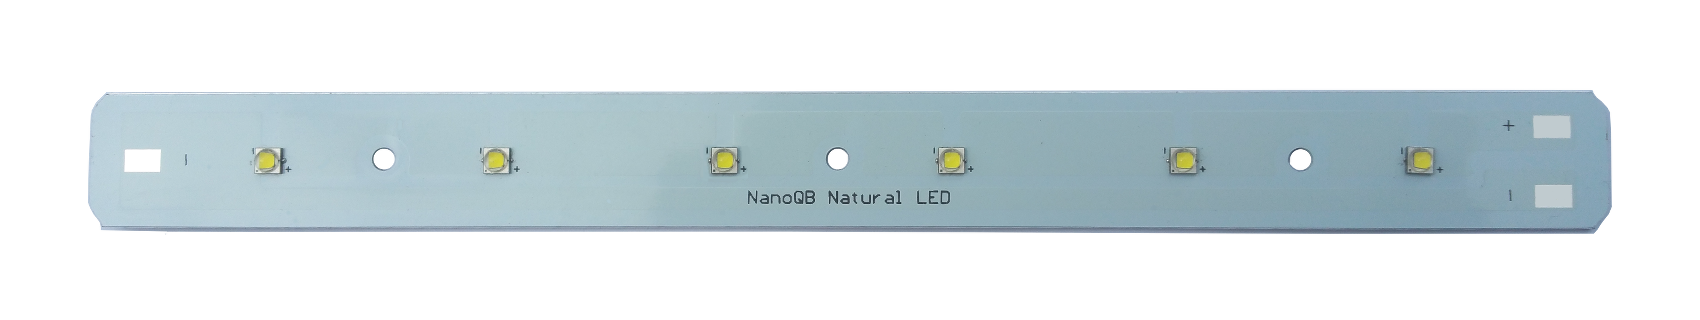 NanoQB Natural LED – Das LED-Modul für Aquarianer